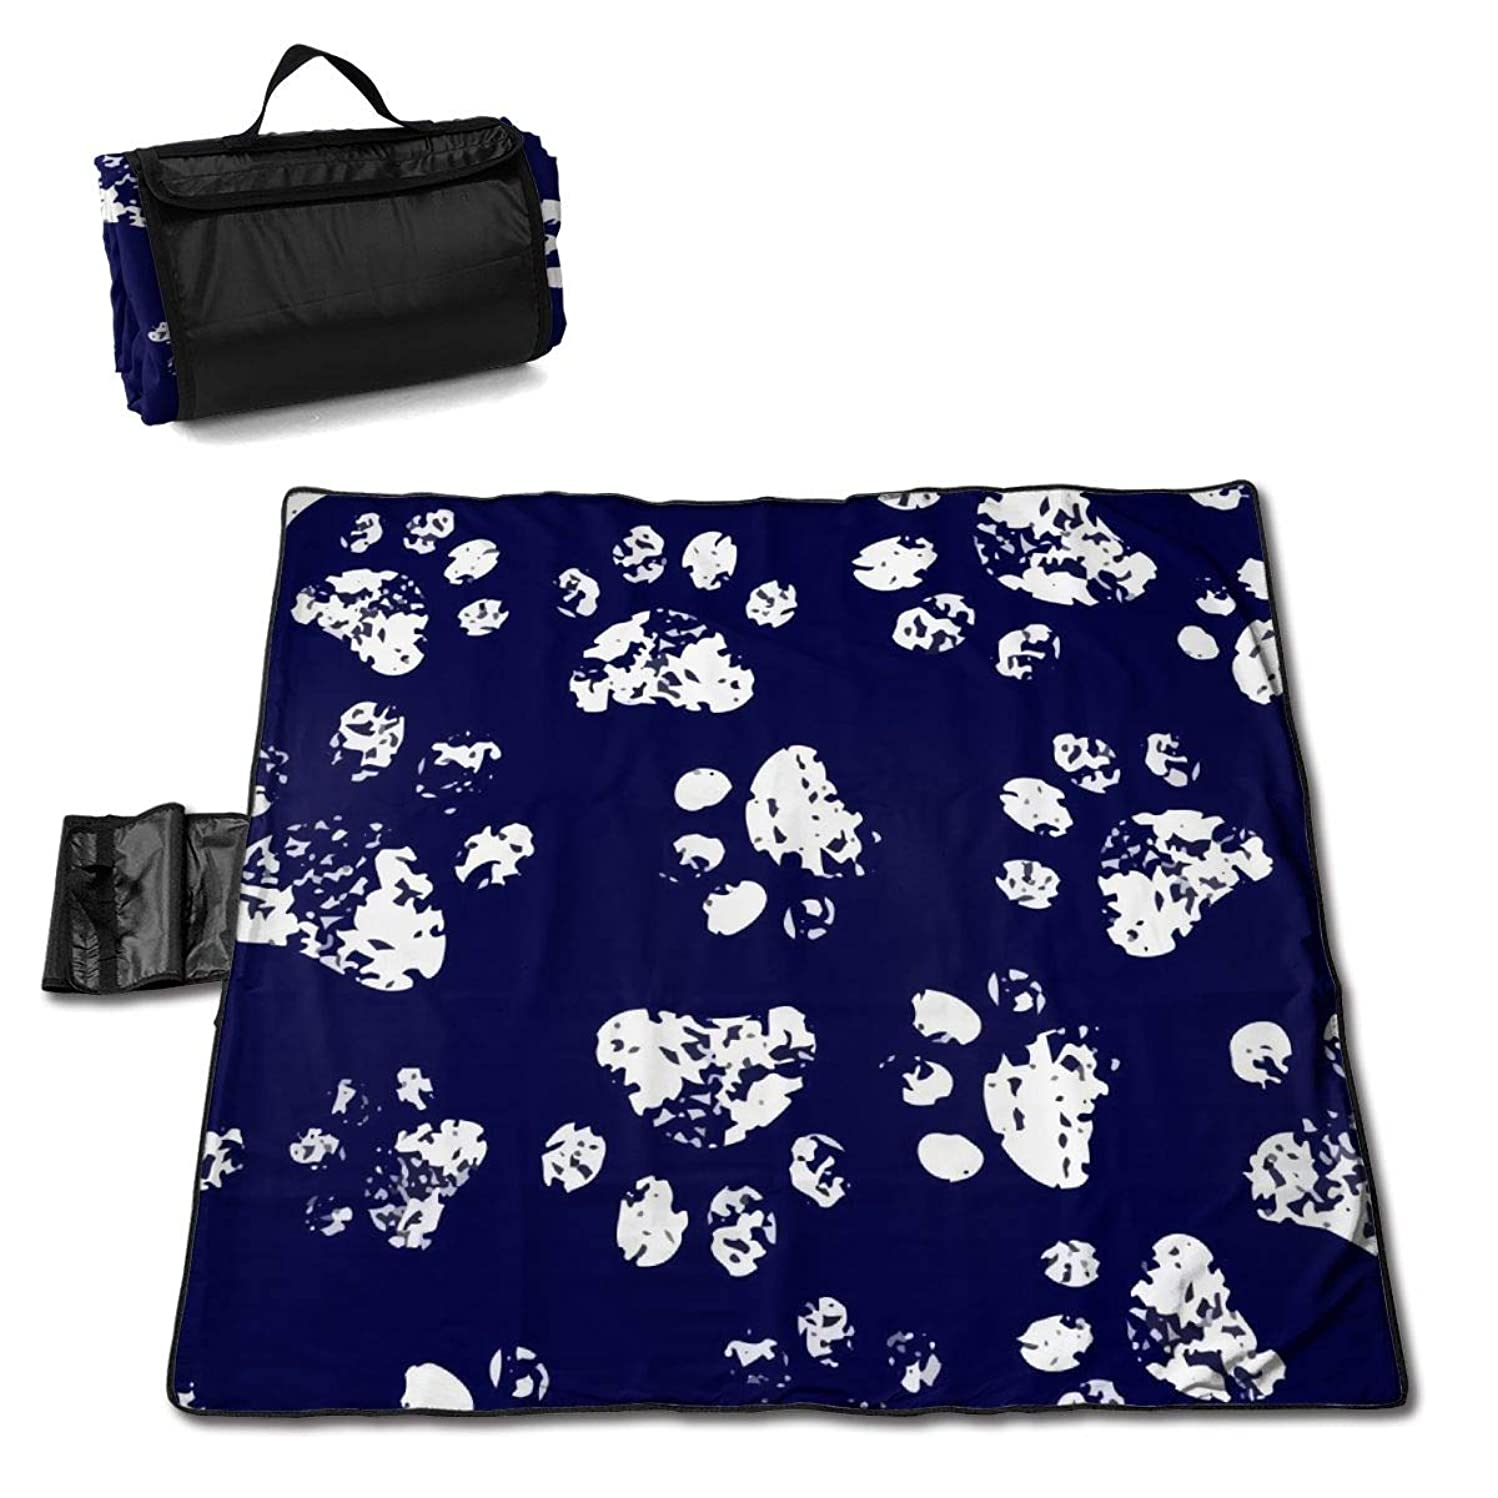 Socira Paw Large Picnic Blanket Water Resistant Beach Blanket Machine Washable Outdoor Blanket Folds Into A Tote Bag